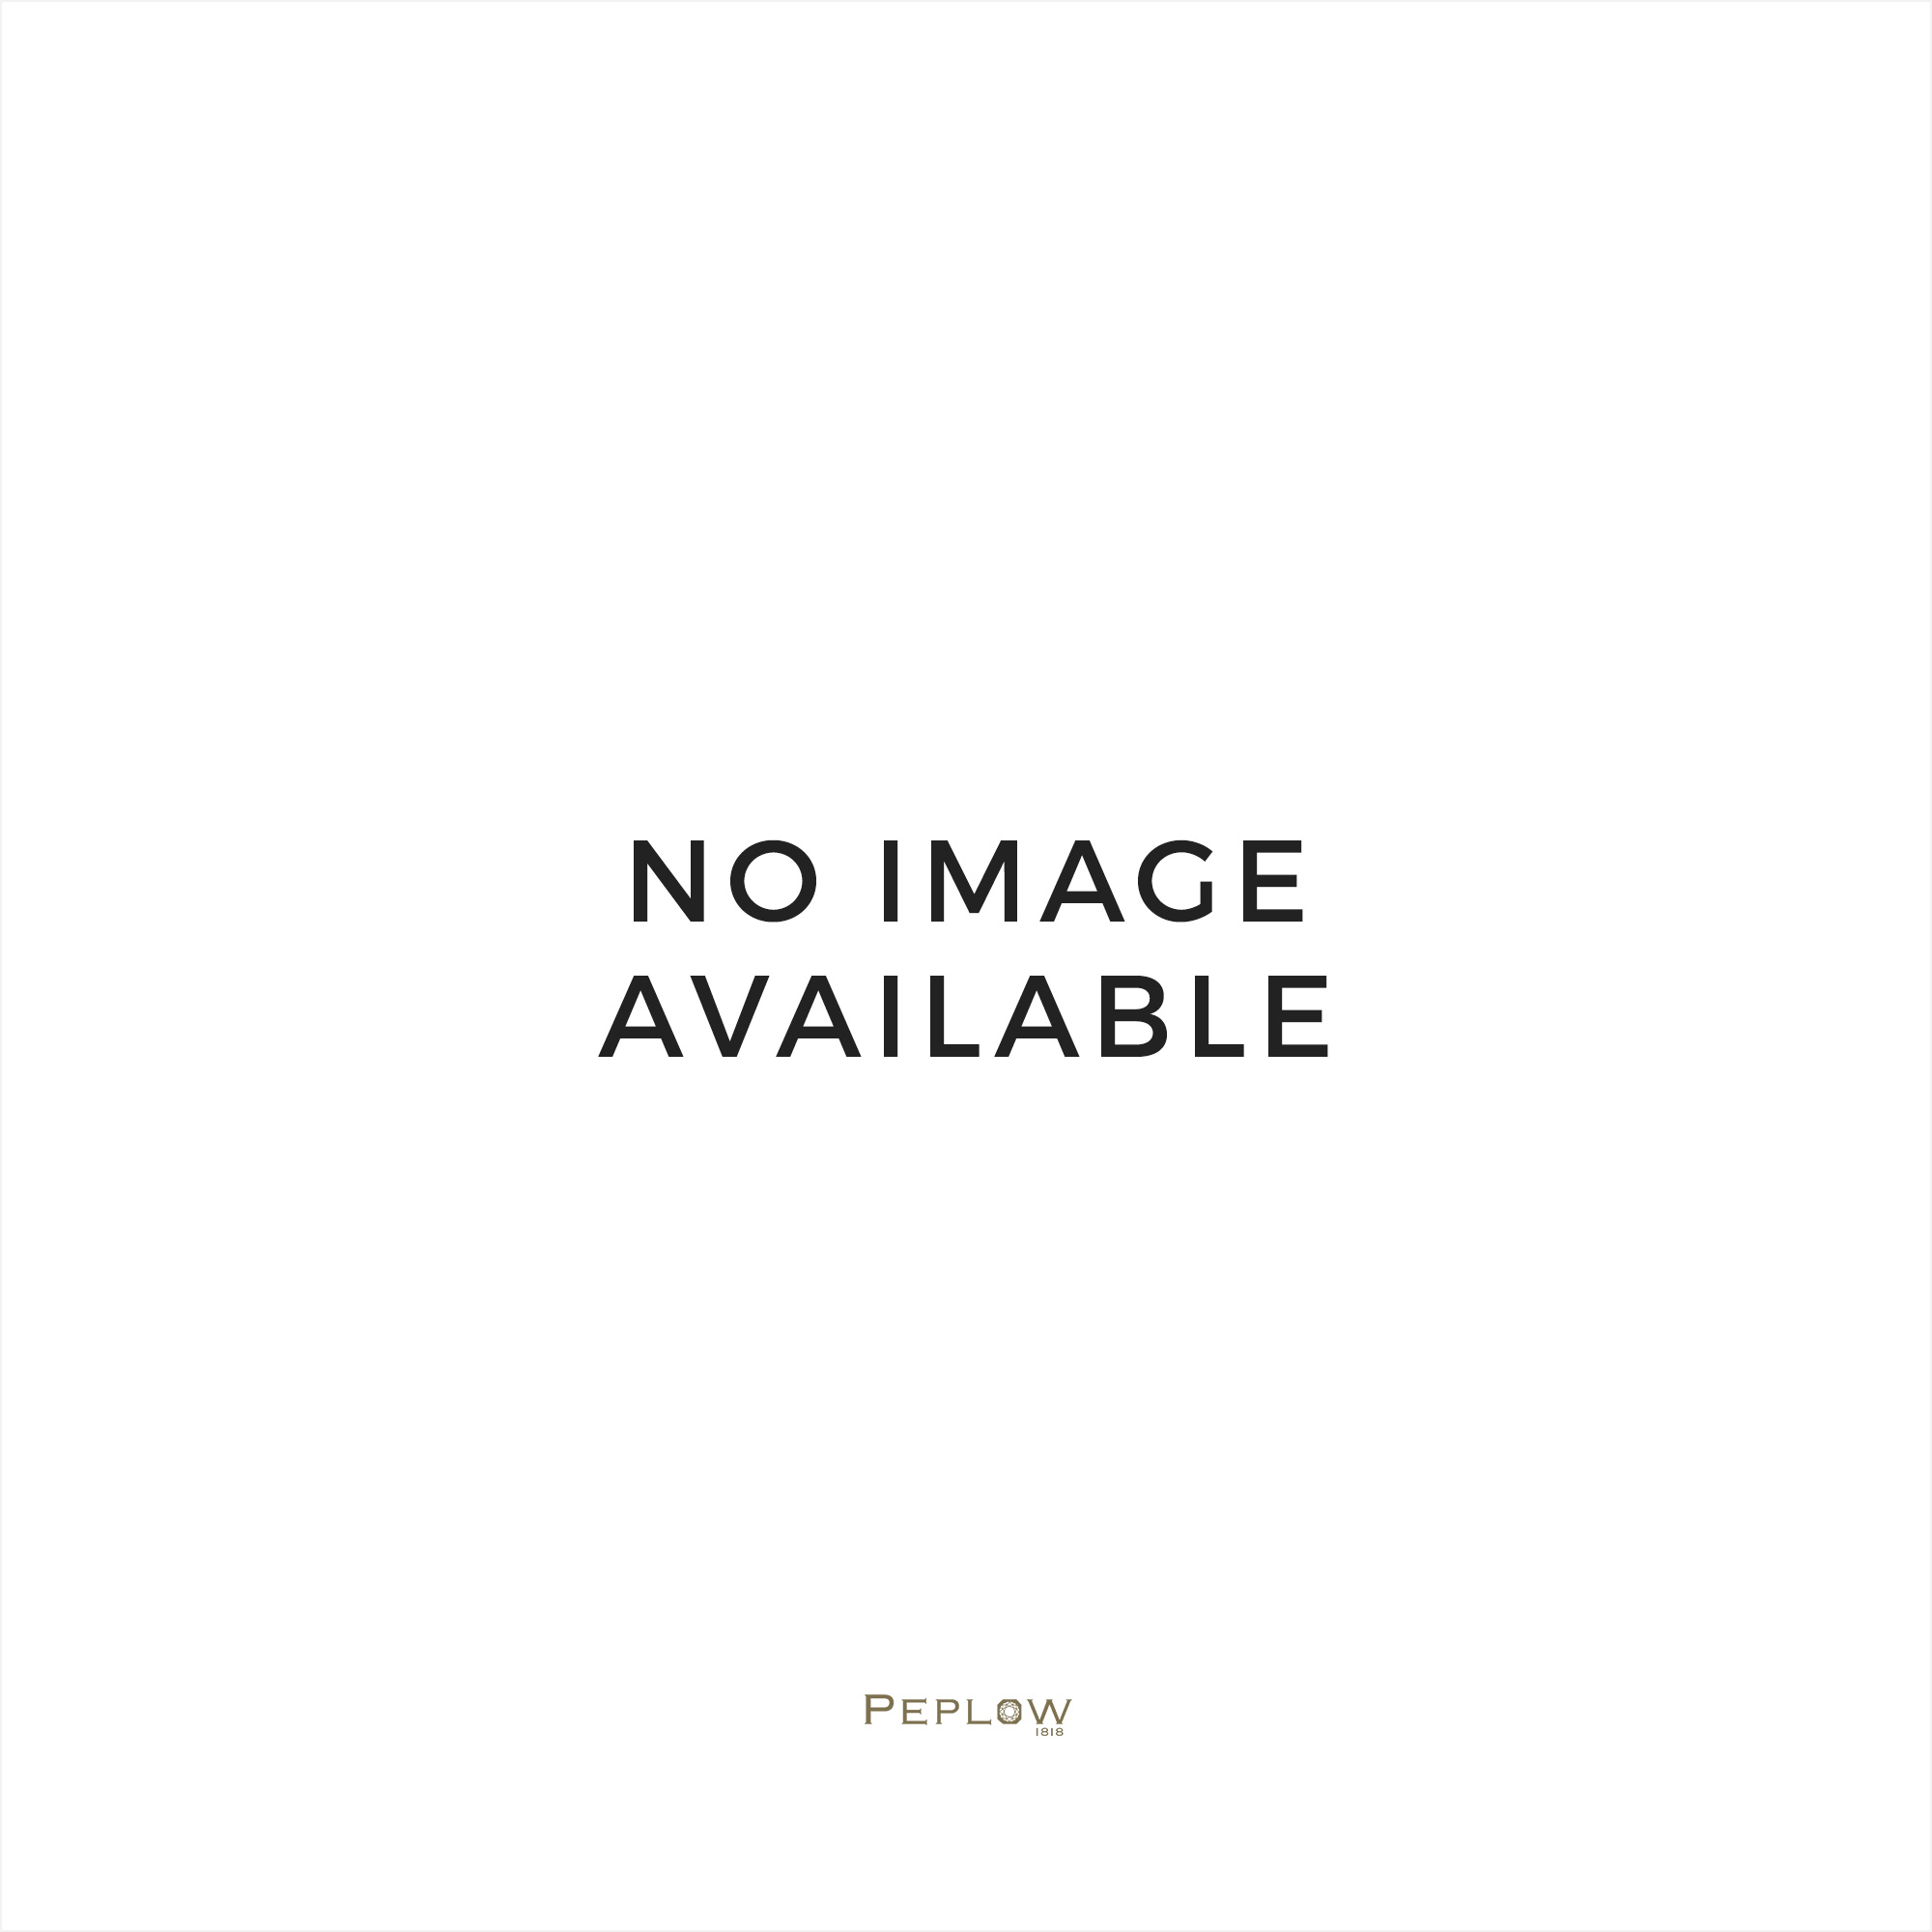 14mm rose gold plated Perroquet bangle cuff 7026168400